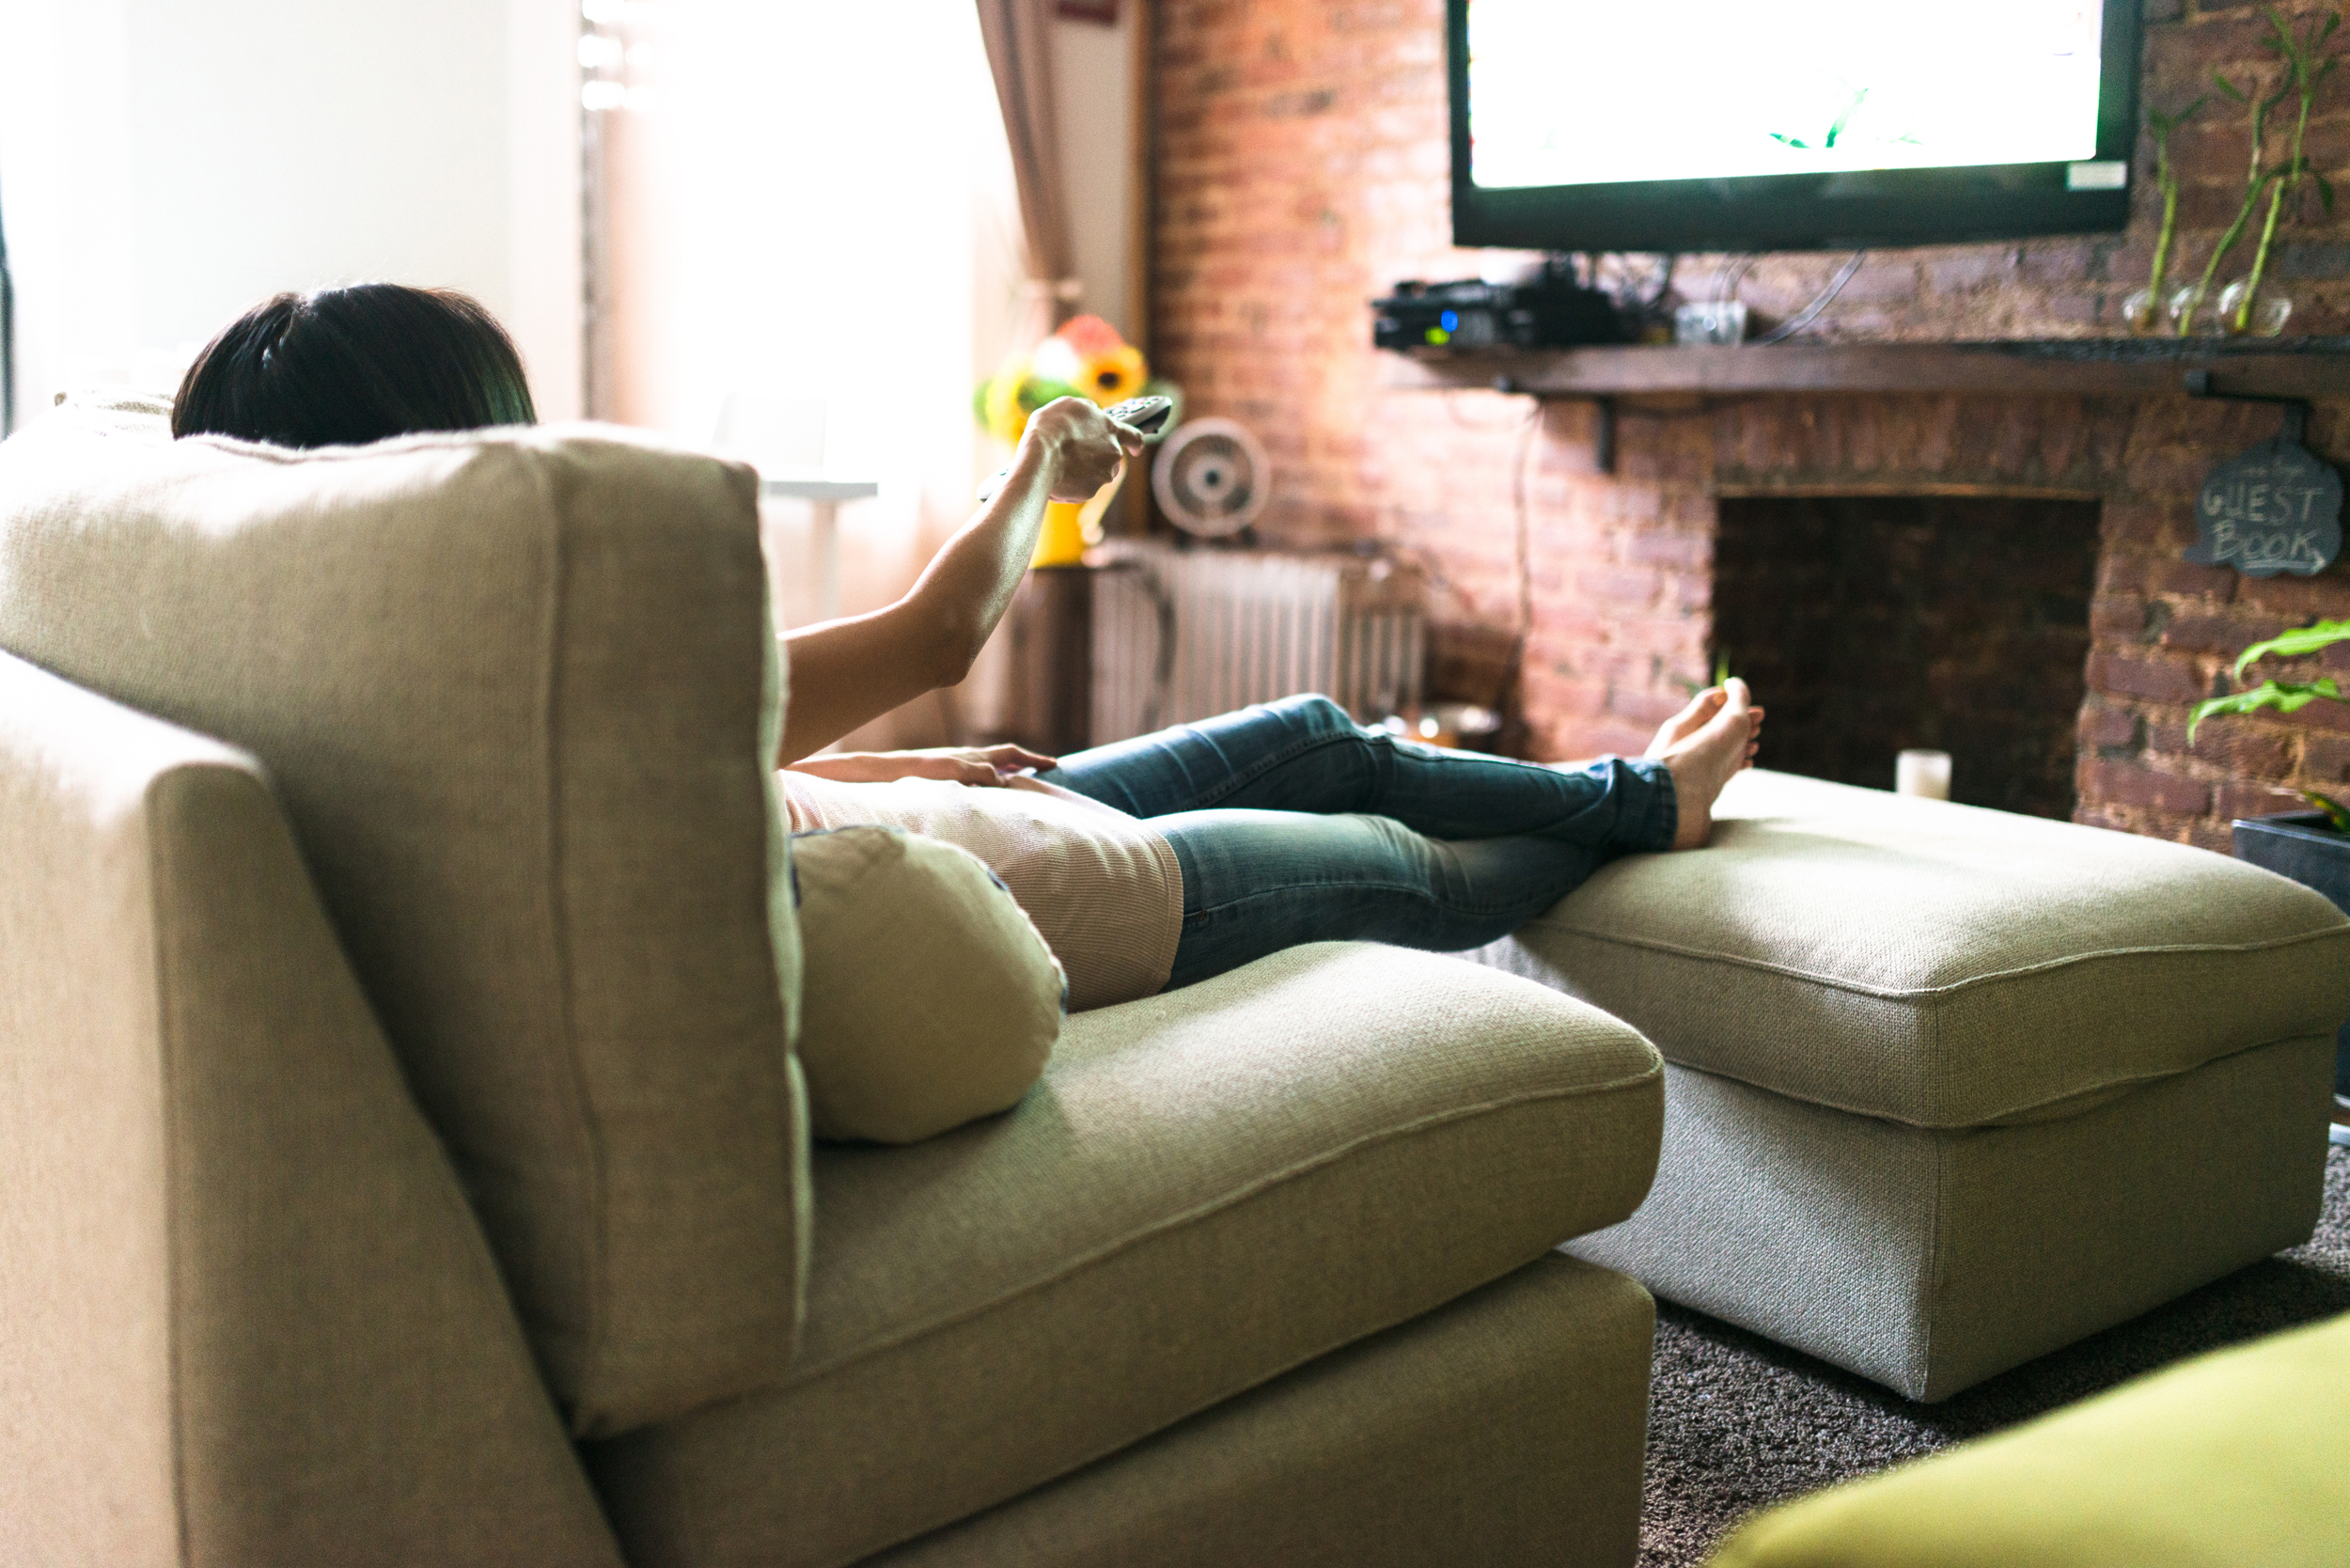 Image result for Sedentary time spent sitting, watching TV may increase colon cancer risk